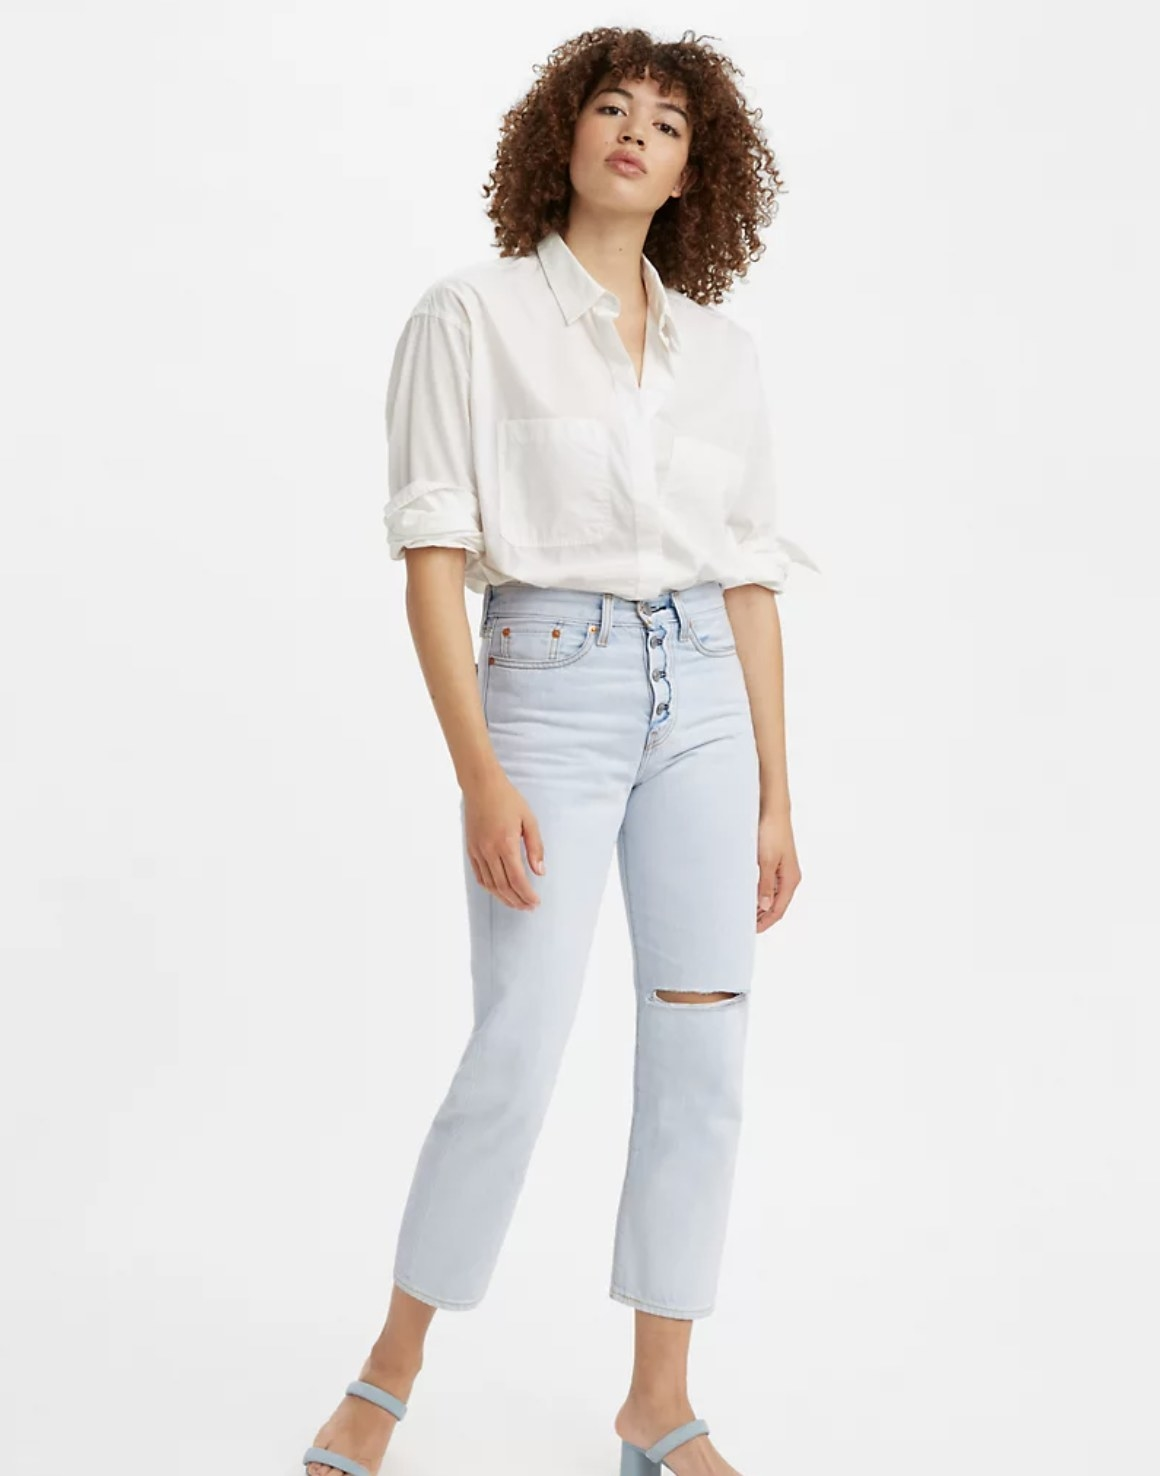 Model is wearing a white top with light straight denim jeans